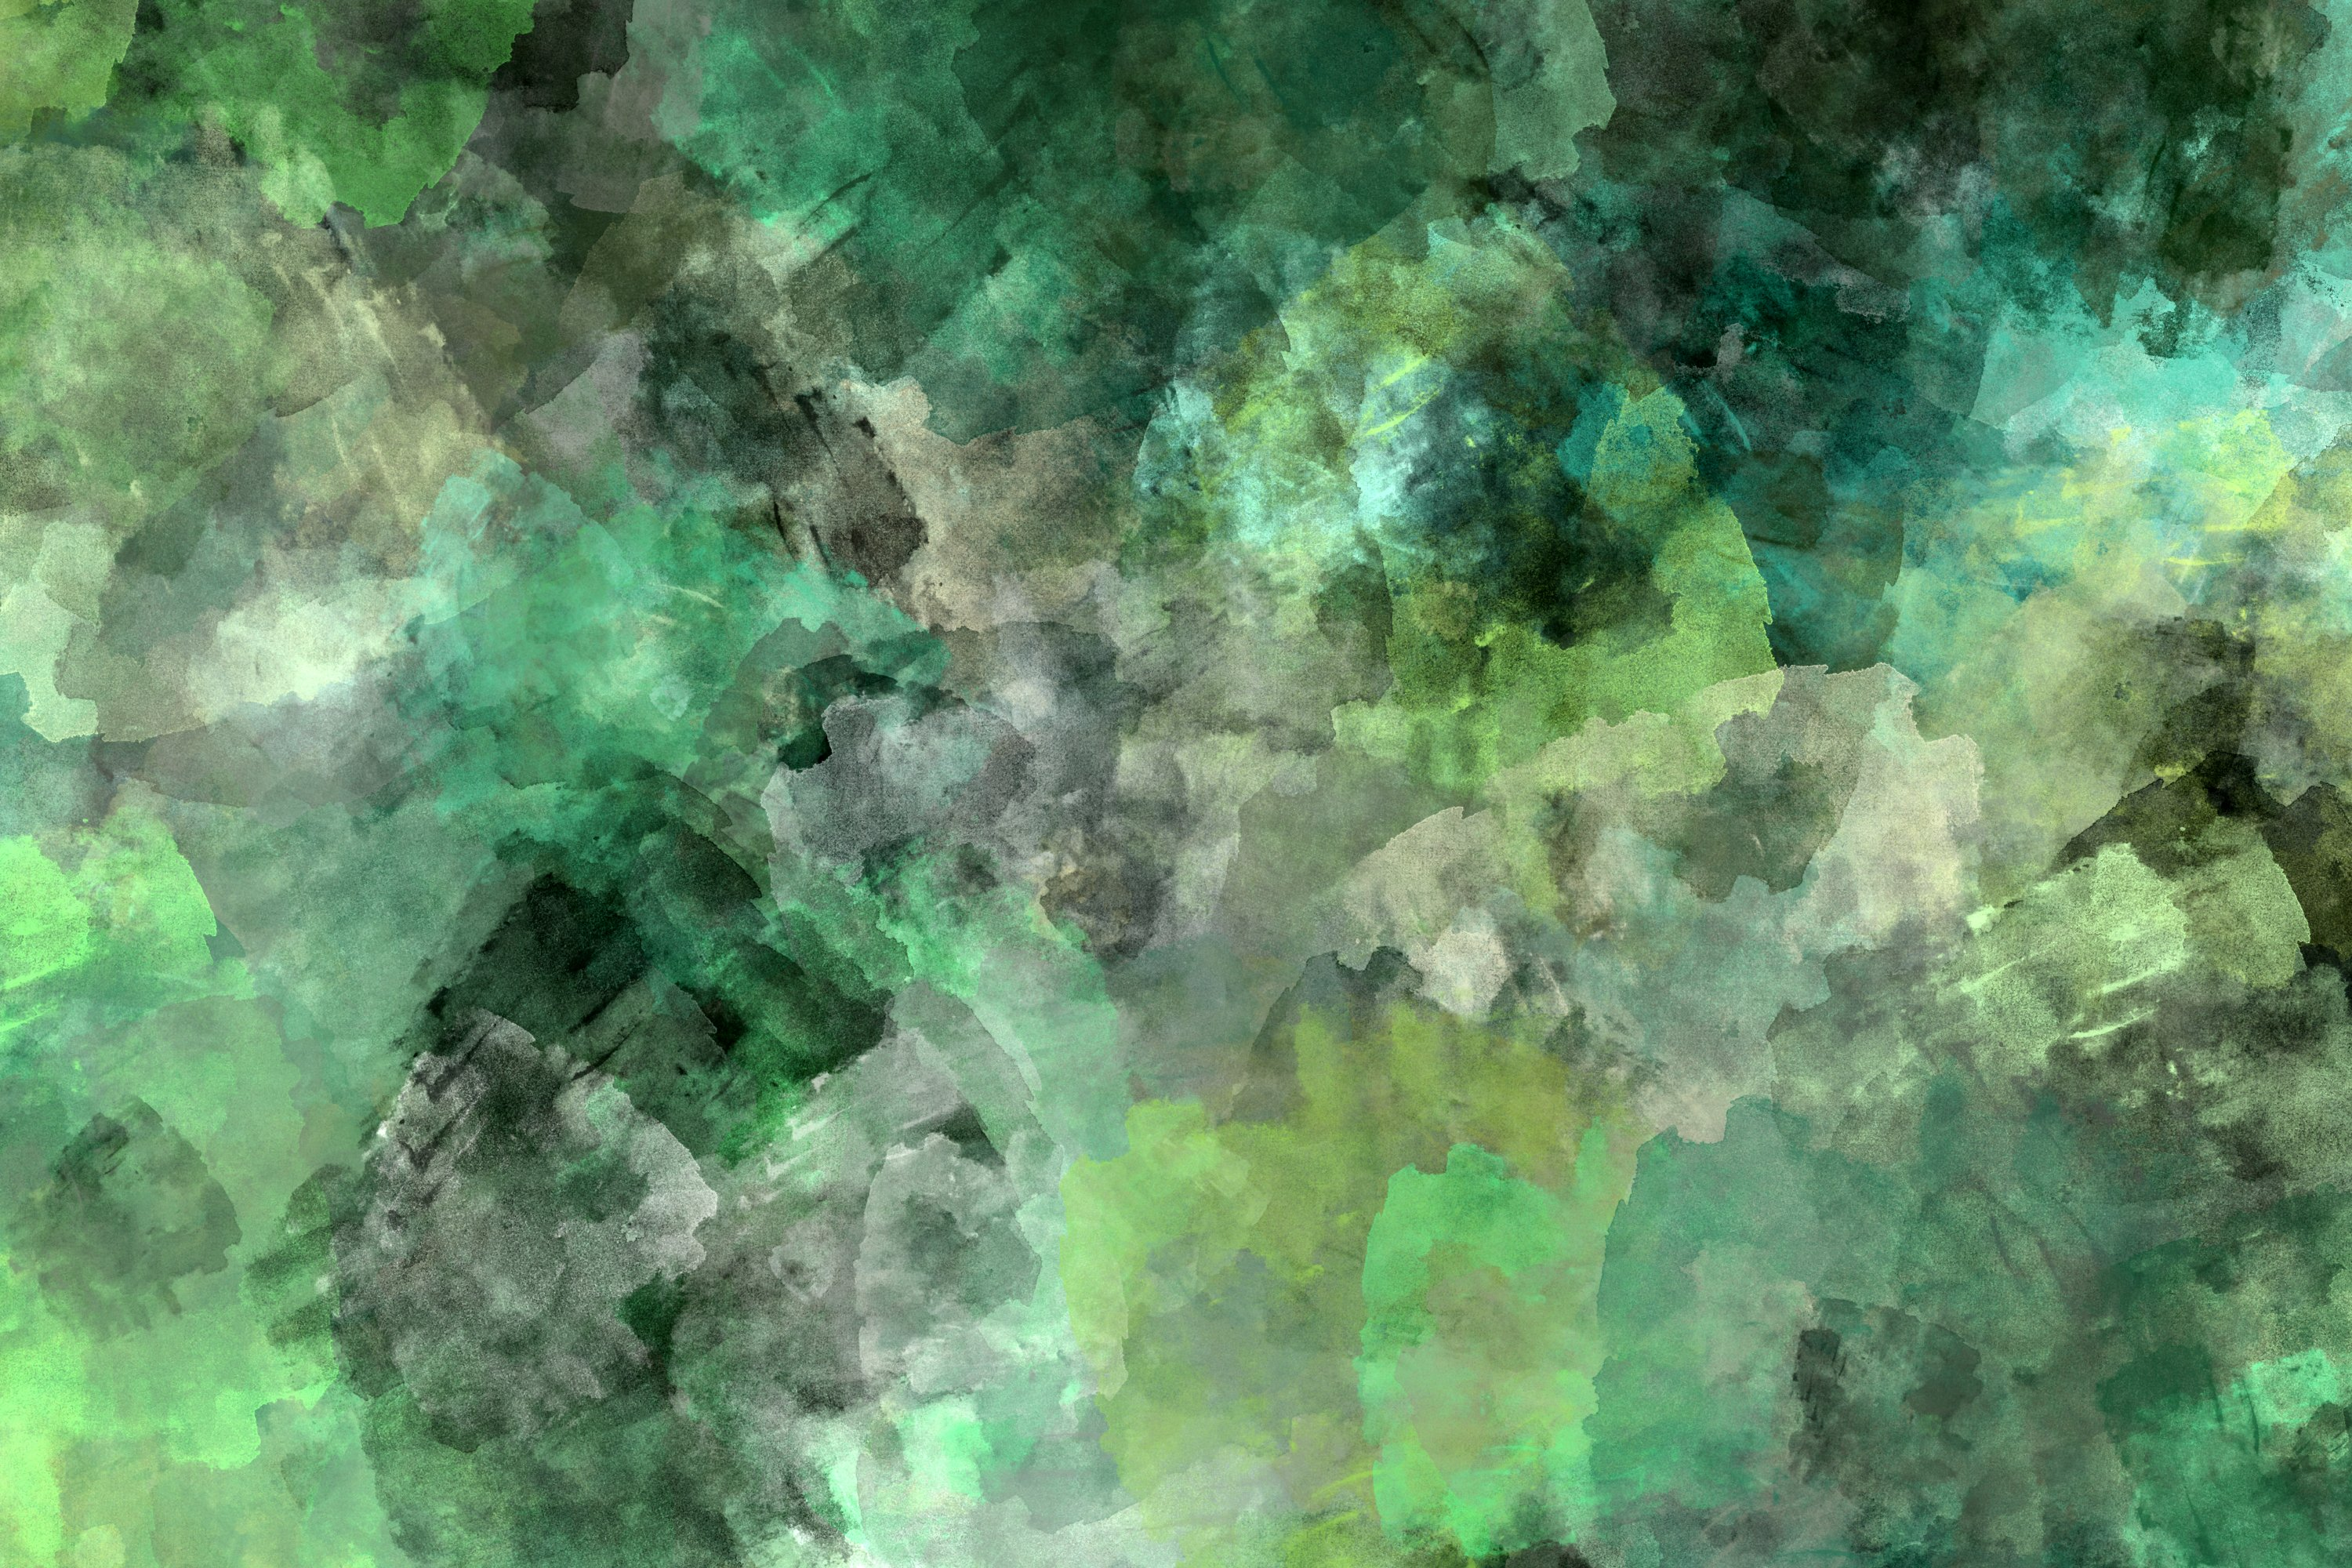 10 Grunge Watercolor Washes Textures example image 3